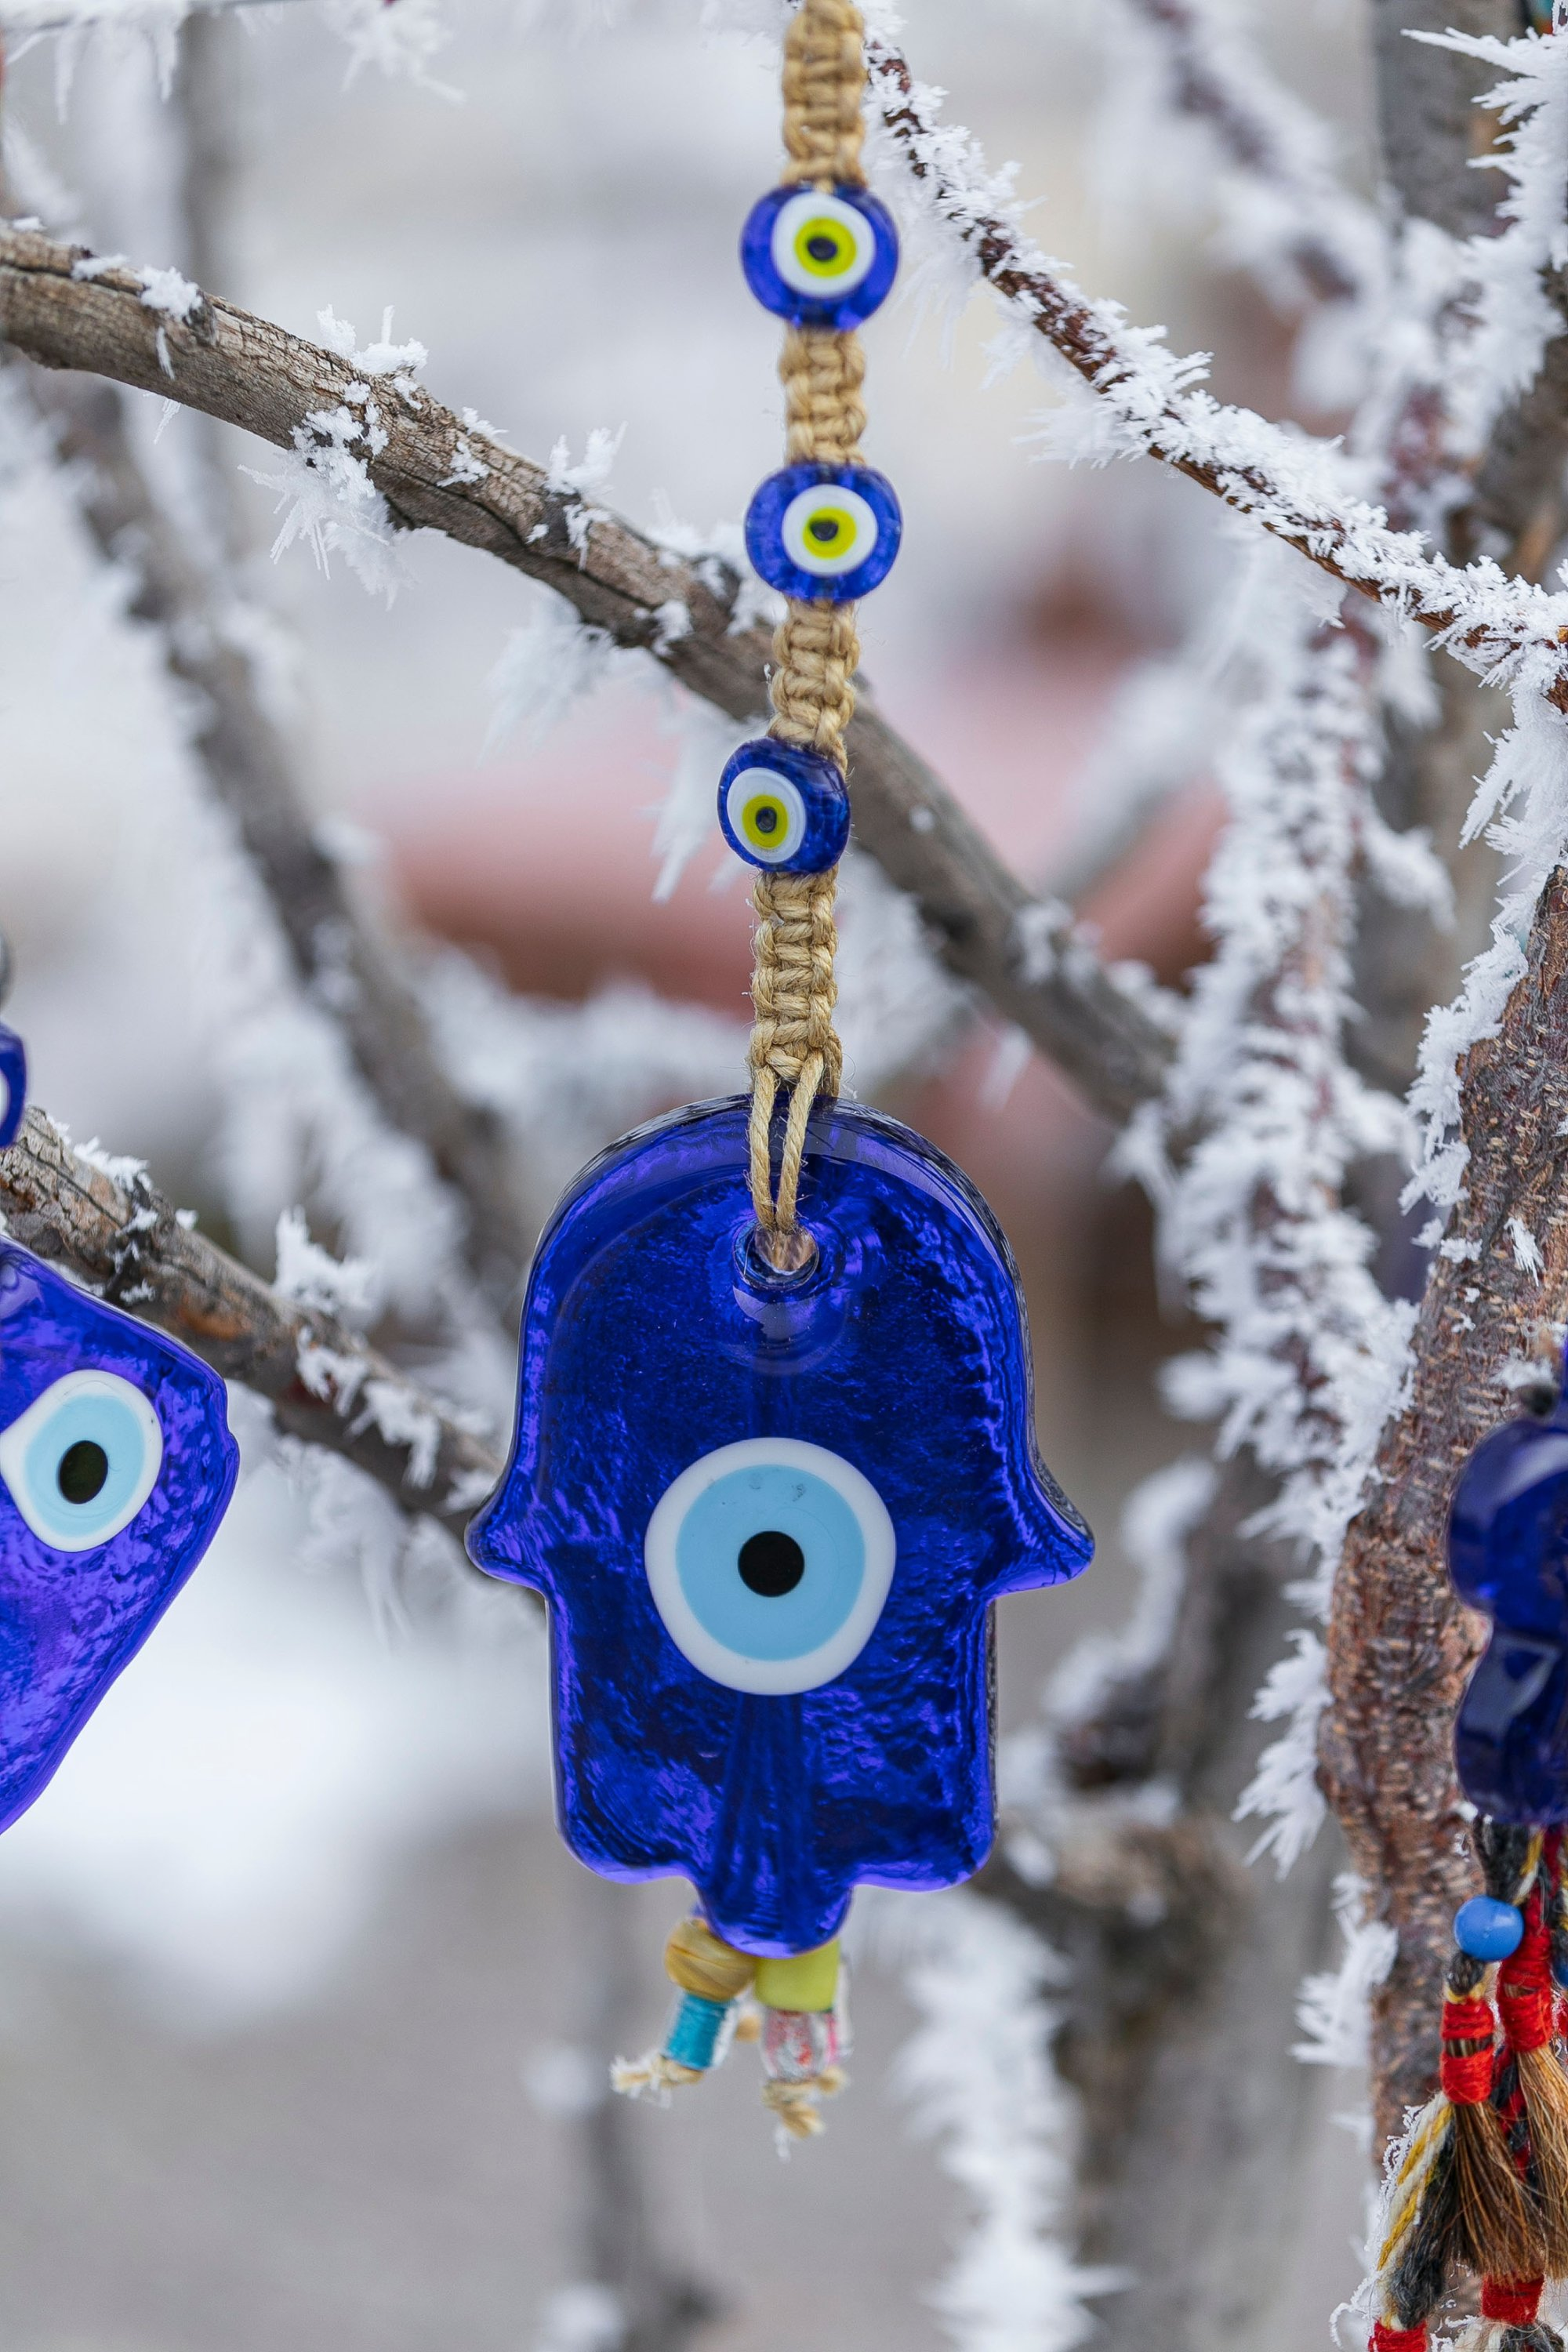 For the Turks, the evil eye bead helps ward off misfortune and evil spirits. (Shutterstock Photo)